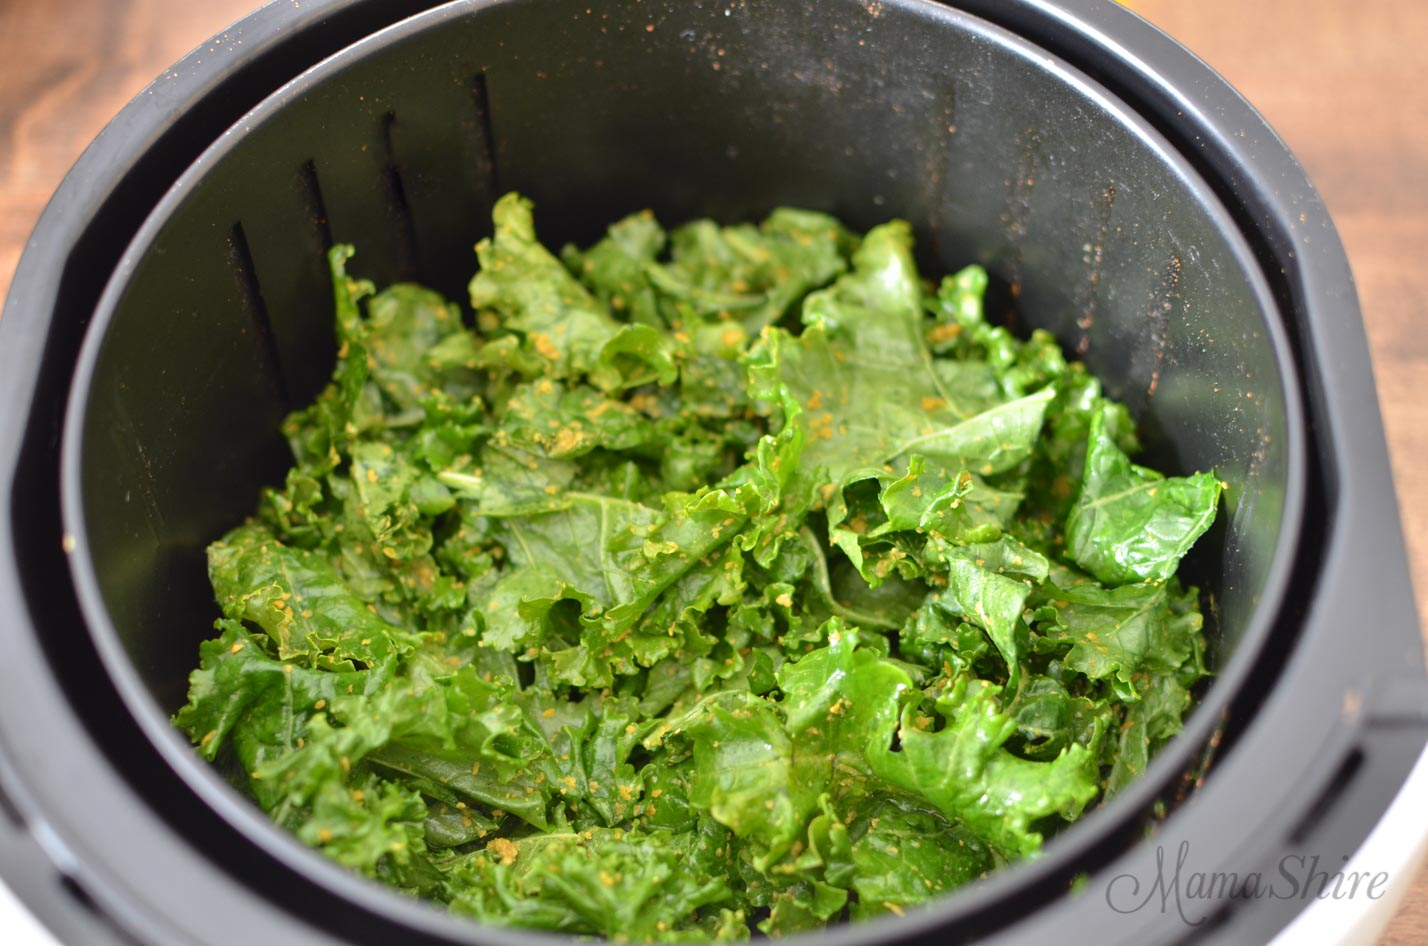 Kale chips in an air-fryer.